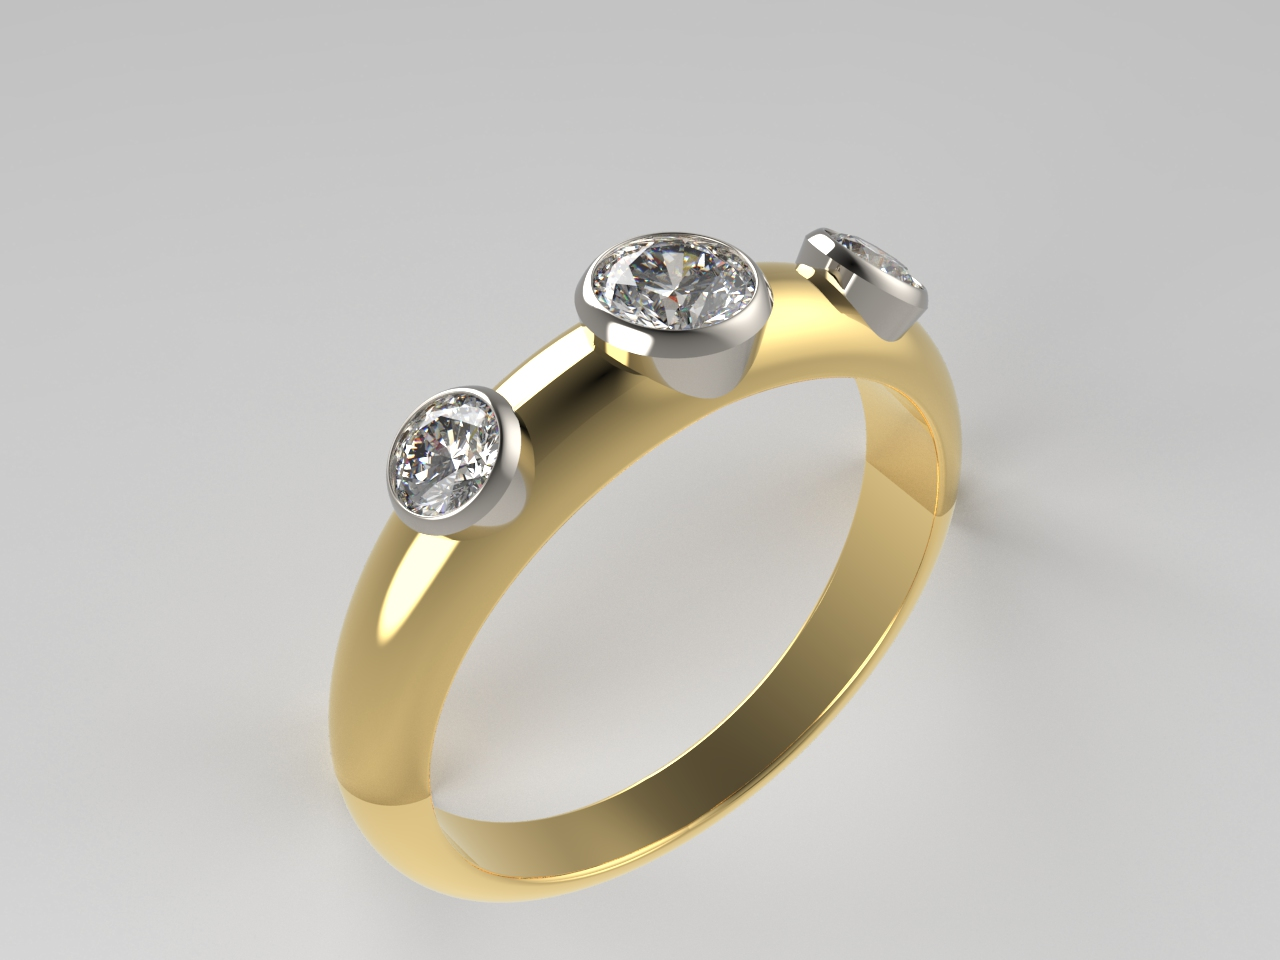 Bespoke Jewellery Design | Aberdeen | 18ct yellow gold and platinum rub over set 3 stone diamond ring